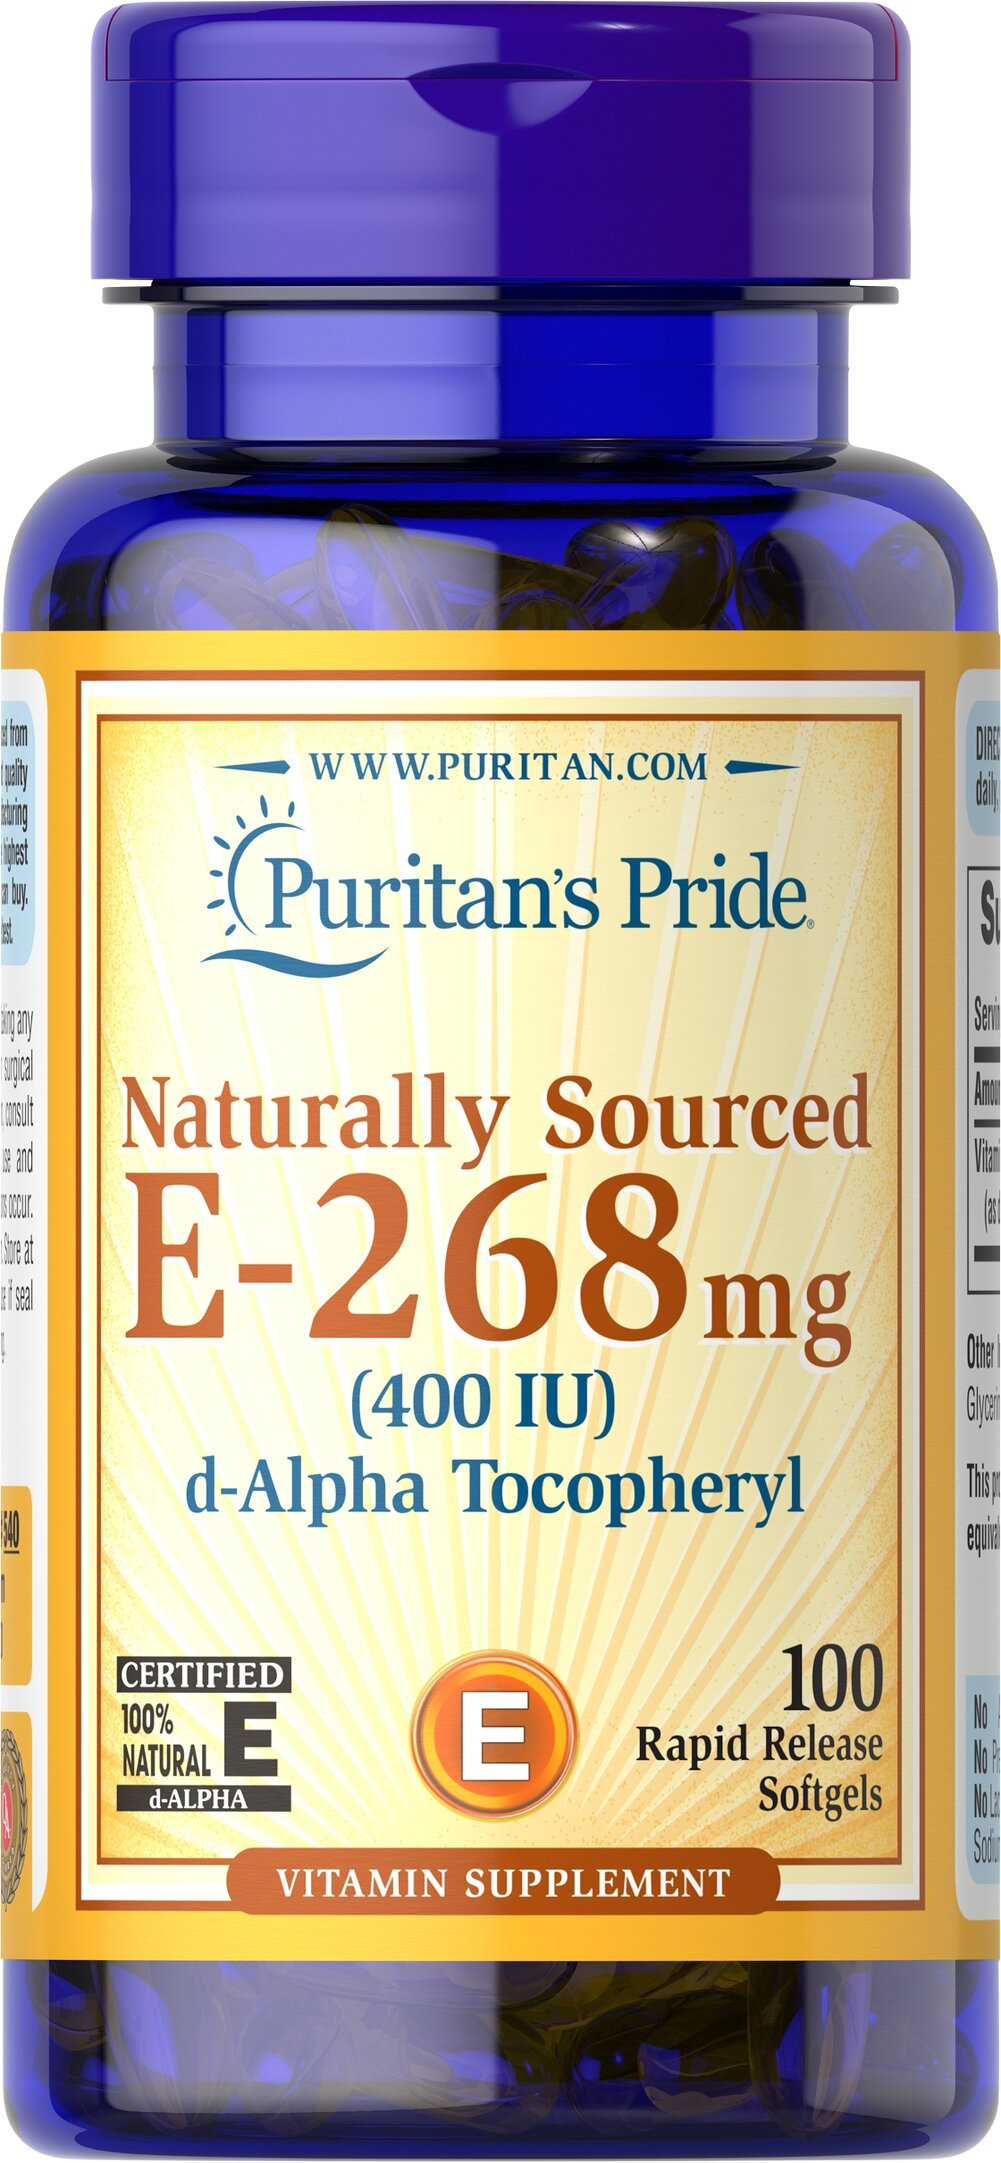 Vitamin E-400 iu 100% Natural <p><strong></strong><br />Vitamin E is a potent antioxidant that helps fight free radicals.** Oxidative stress caused by free radicals may contribute to the premature aging of cells. Vitamin E also supports immune function and helps support cardiovascular health.** Vitamin E also plays a role in maintaining healthy blood vessels.** Some people, including those on low-fat diets, may not be meeting the recommended daily intake for Vitamin E. Ou